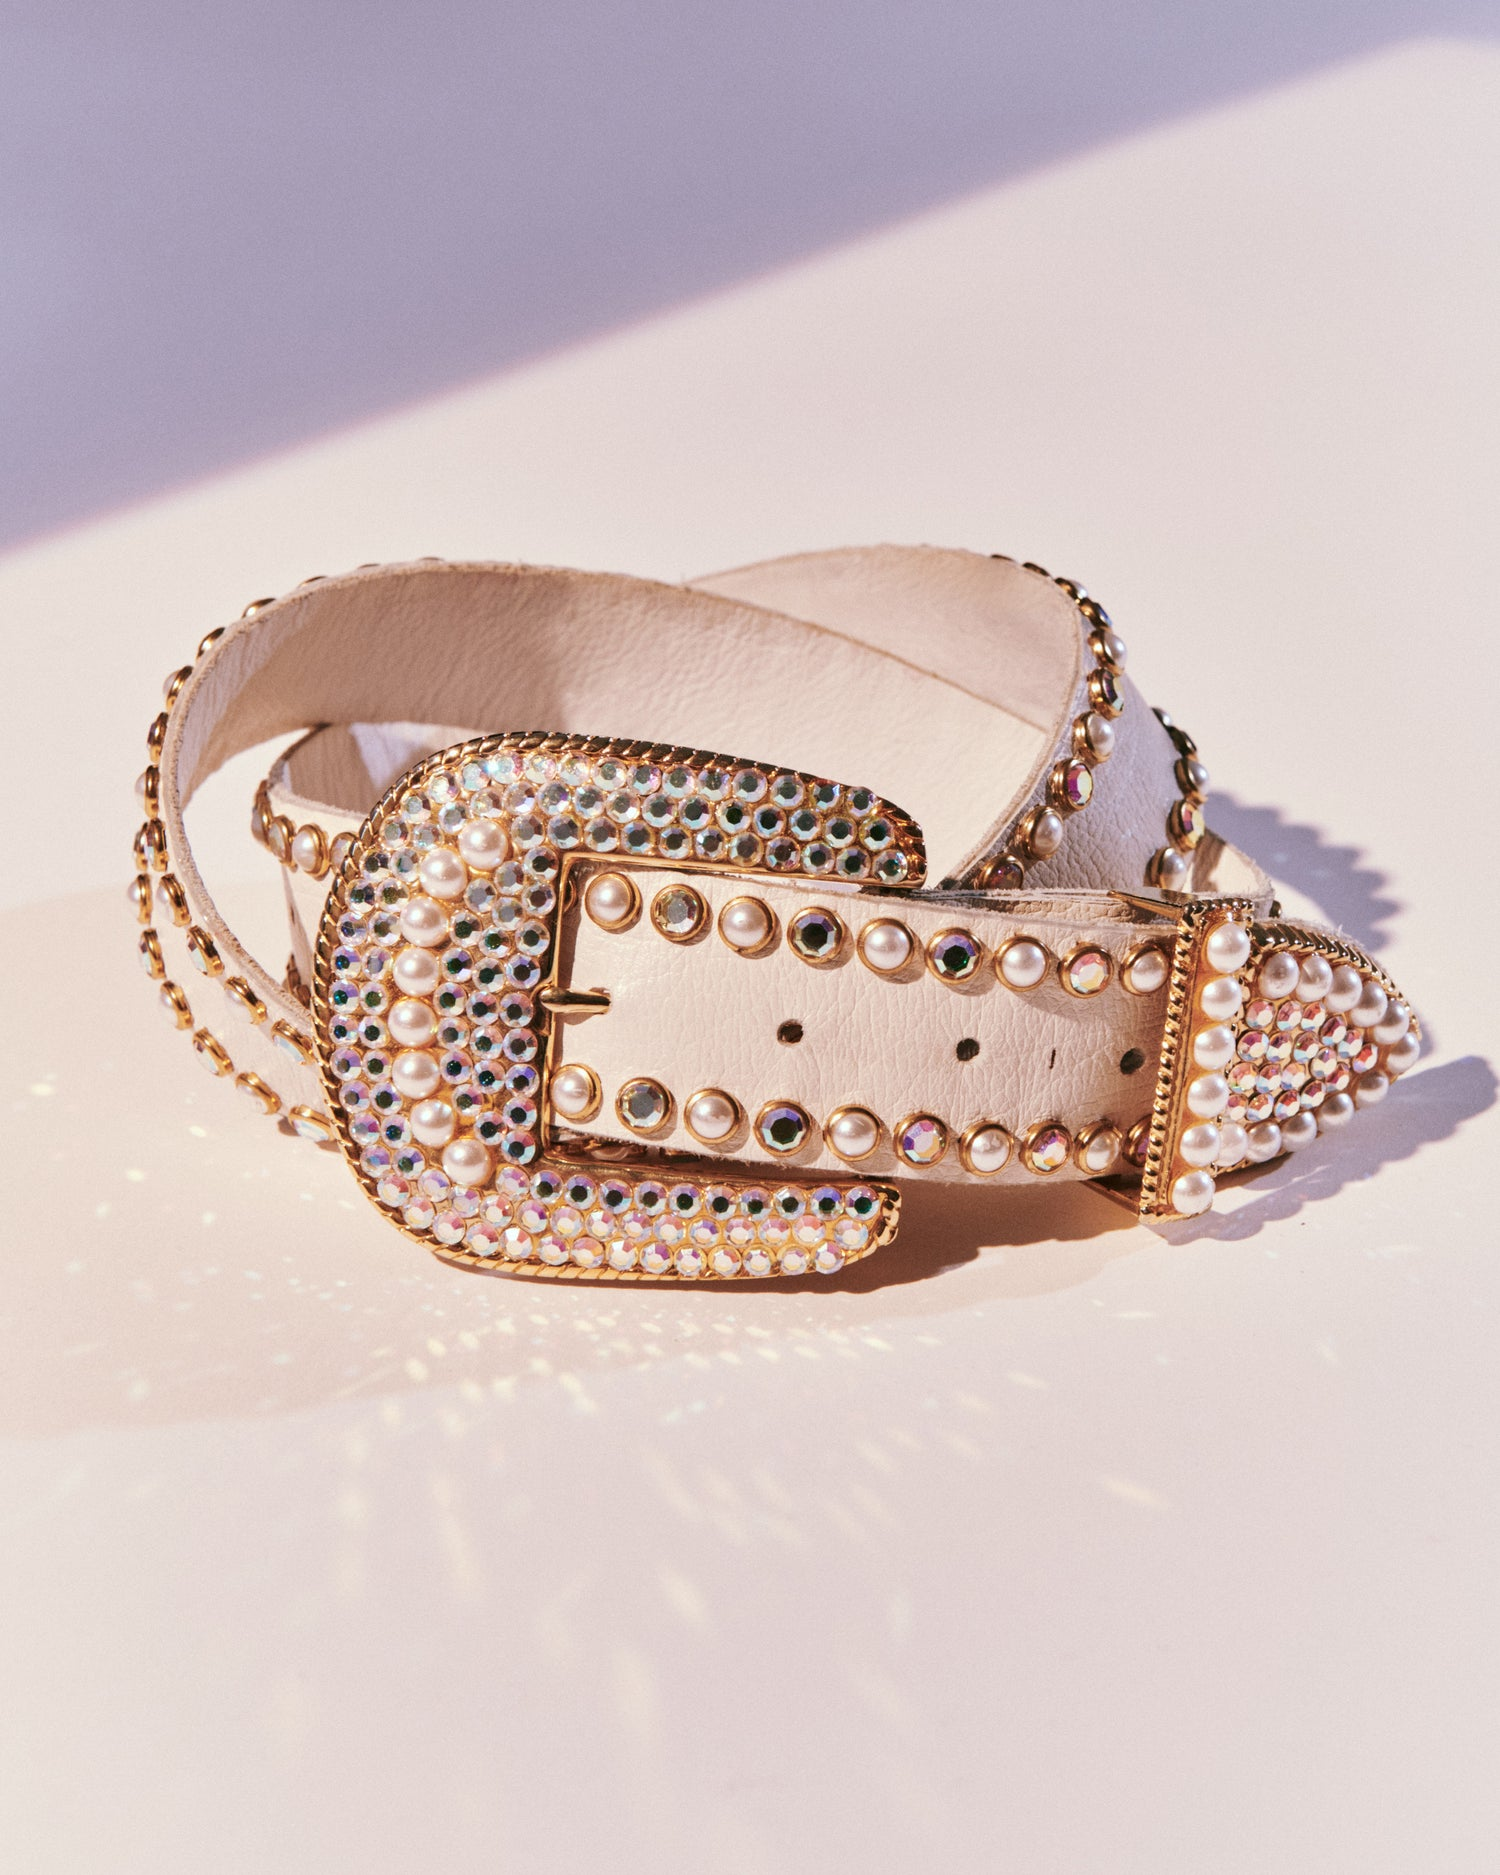 Rhinestone and Faux Pearl Belt